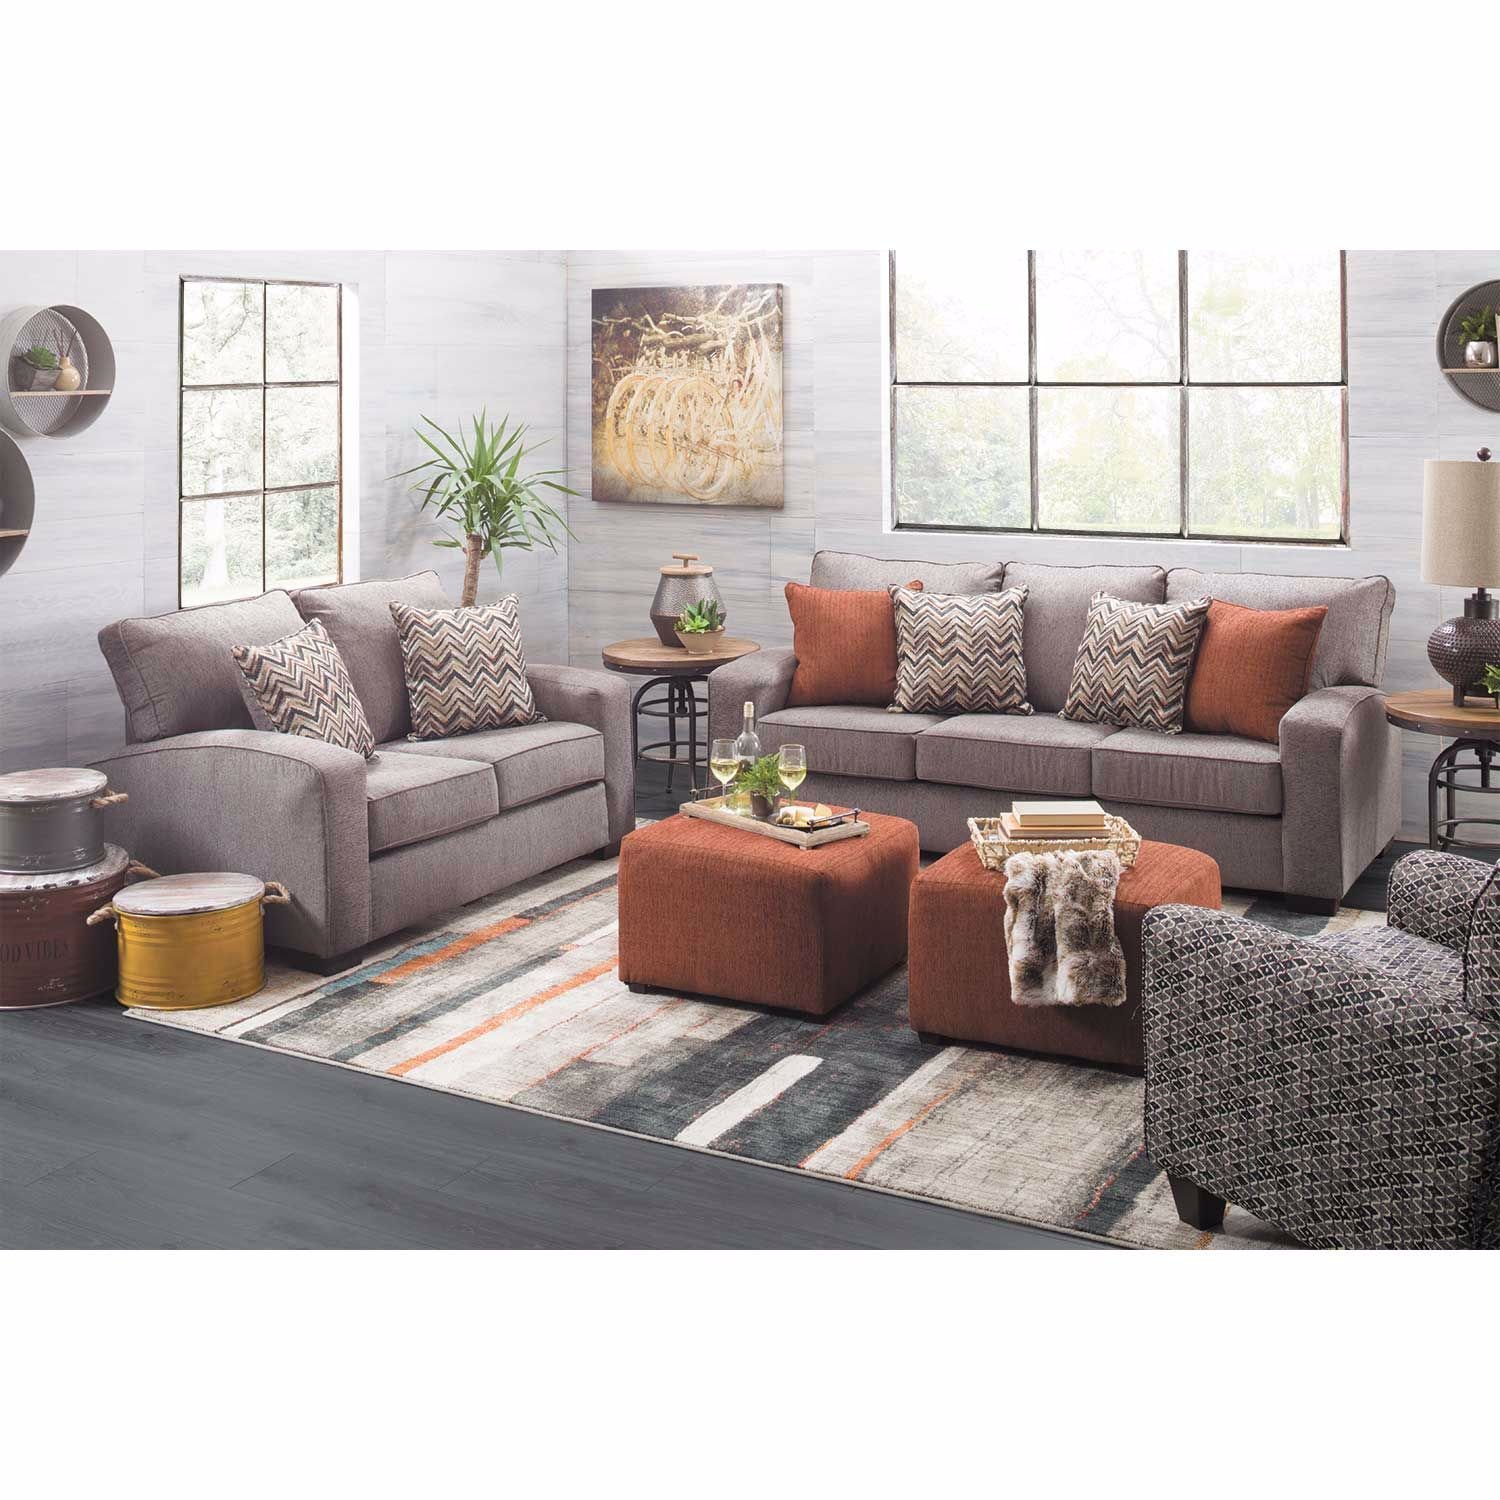 Picture of Endurance Accent Chair